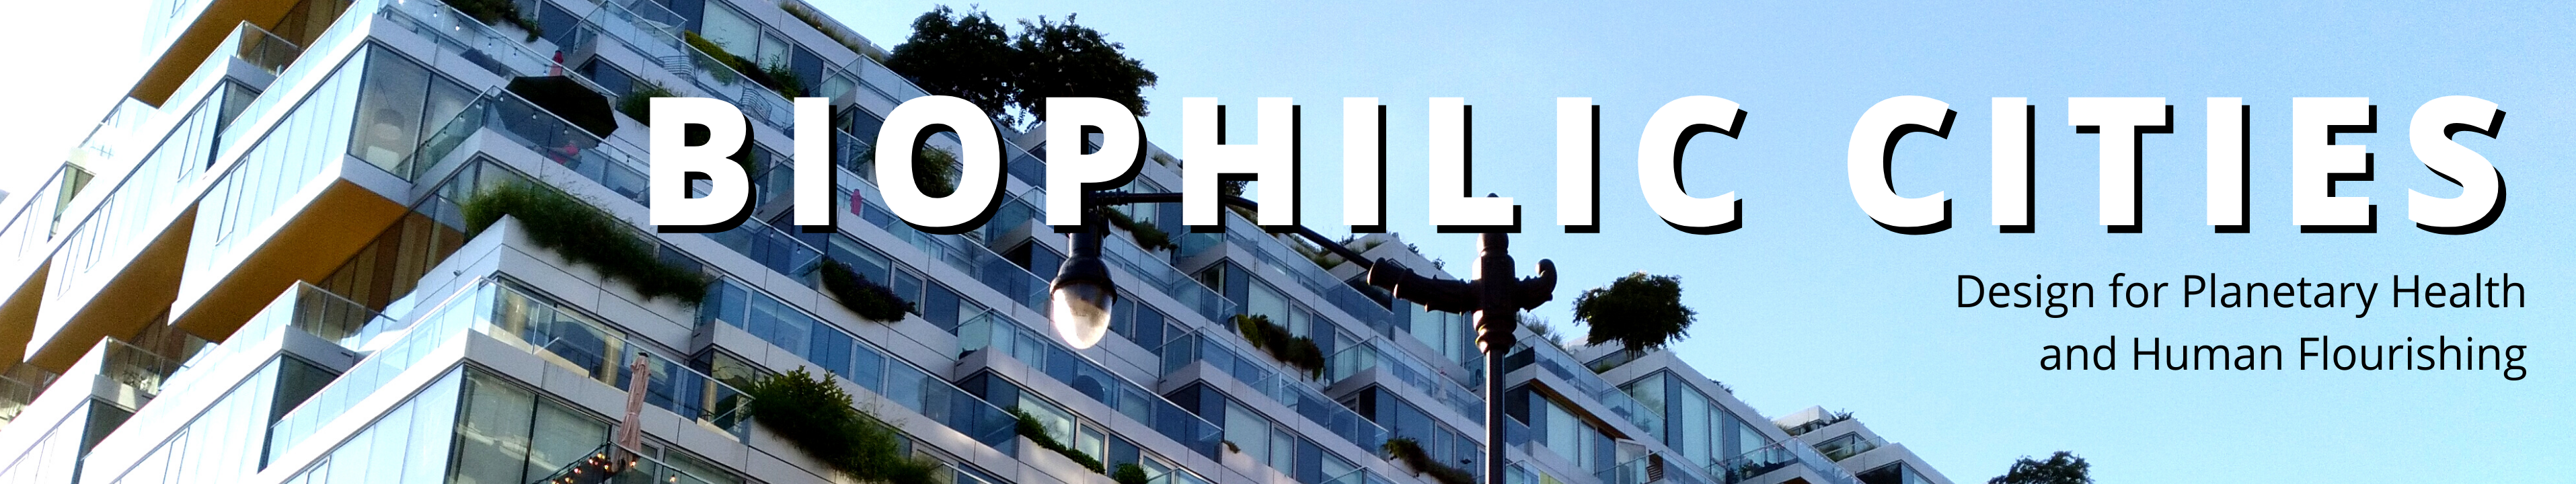 """a window-forward modern city building with plants on the roof, with text that says """"biophilic cities, design for planetary health and human flourishing"""""""